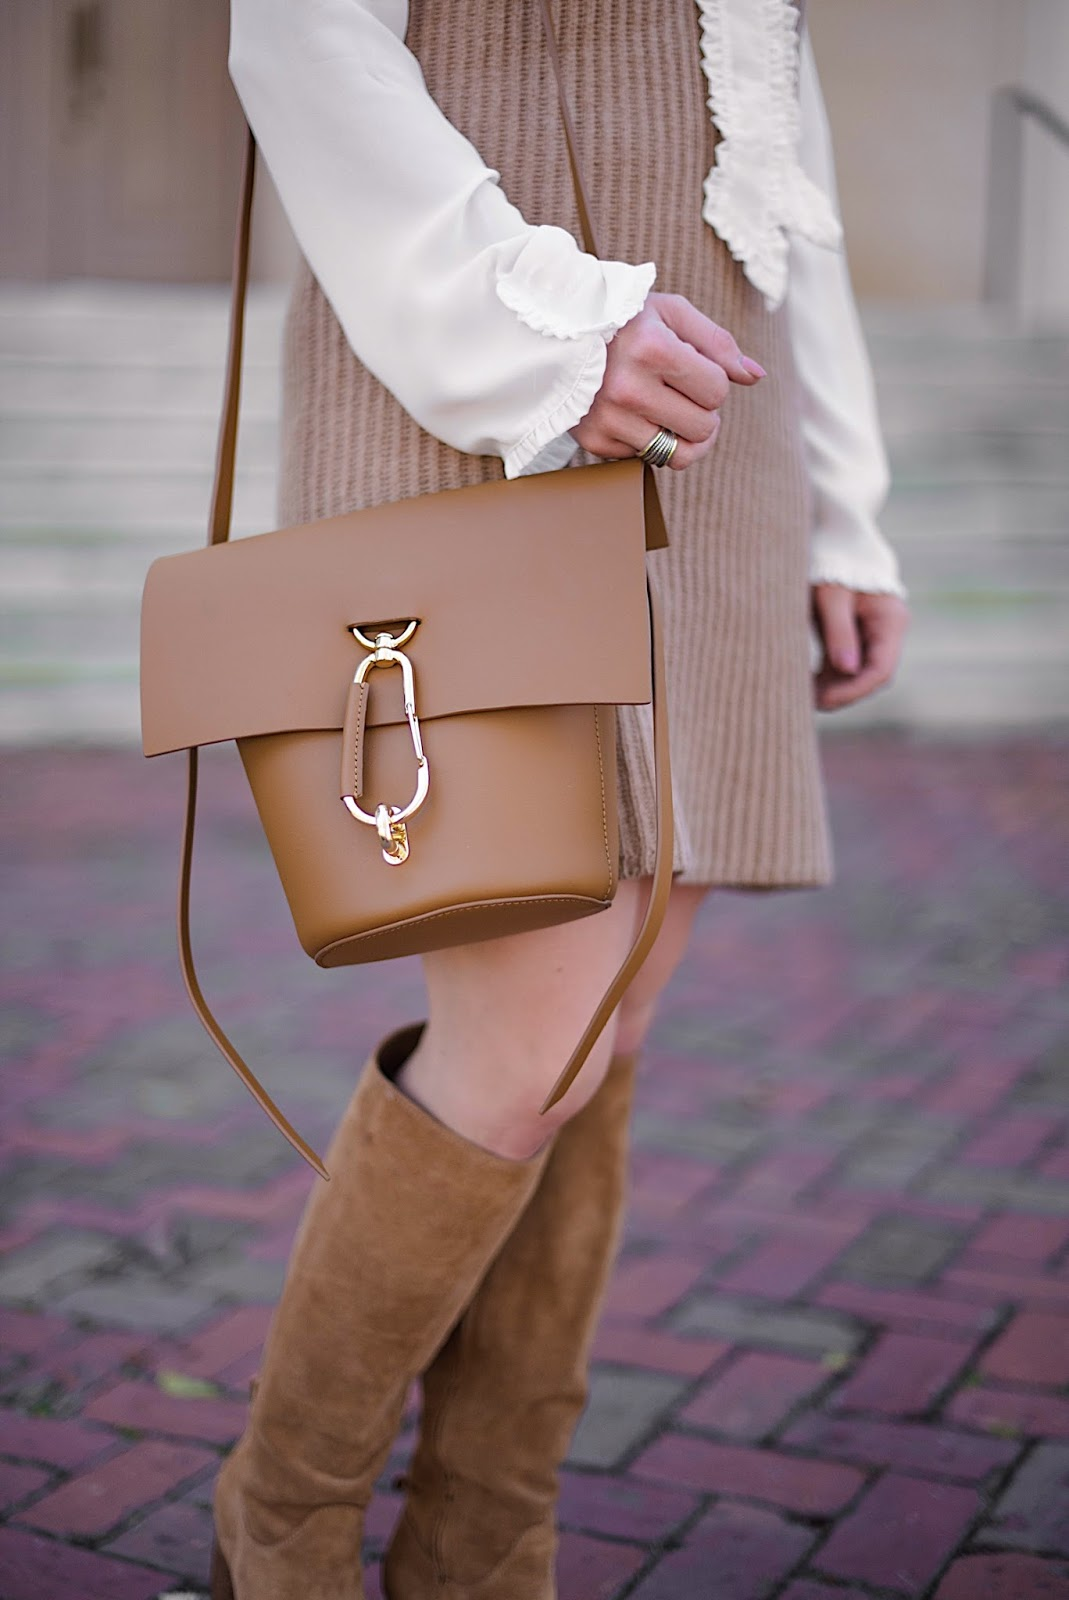 ZAC Zac Posen Belay Leather Crossbody Bag - Fall Fashion on Something Delightful Blog